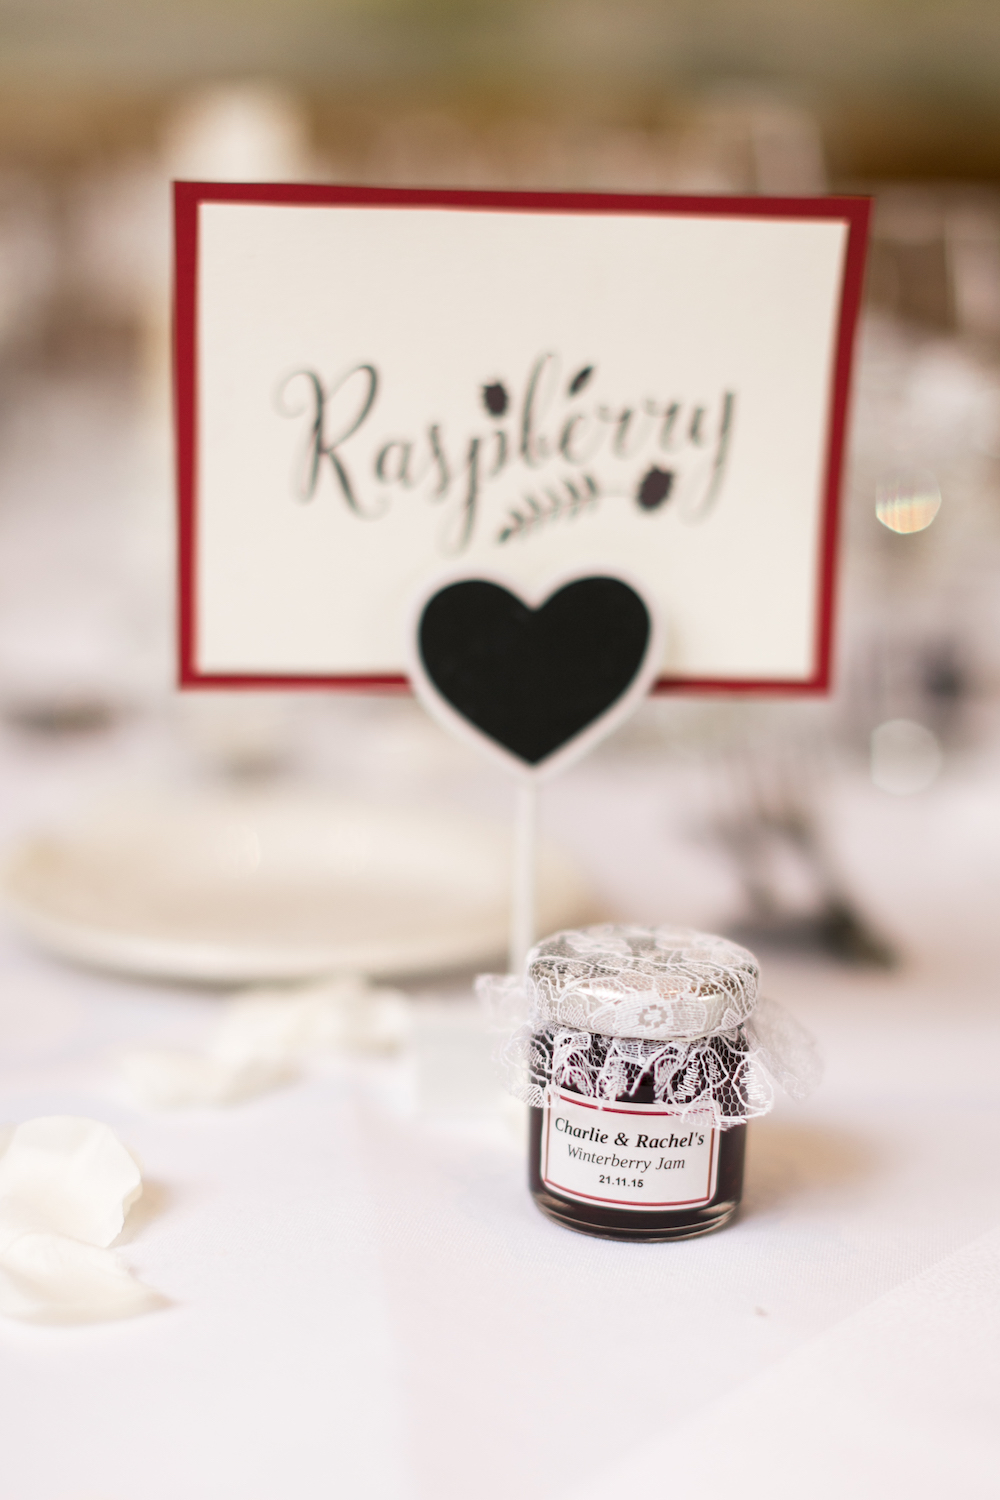 red-and-white-wedding-lancashire-wedding-gibbon-bridge-hotel-in-preston-winter-wedding-jam-table-names-hannah-k-photography-34